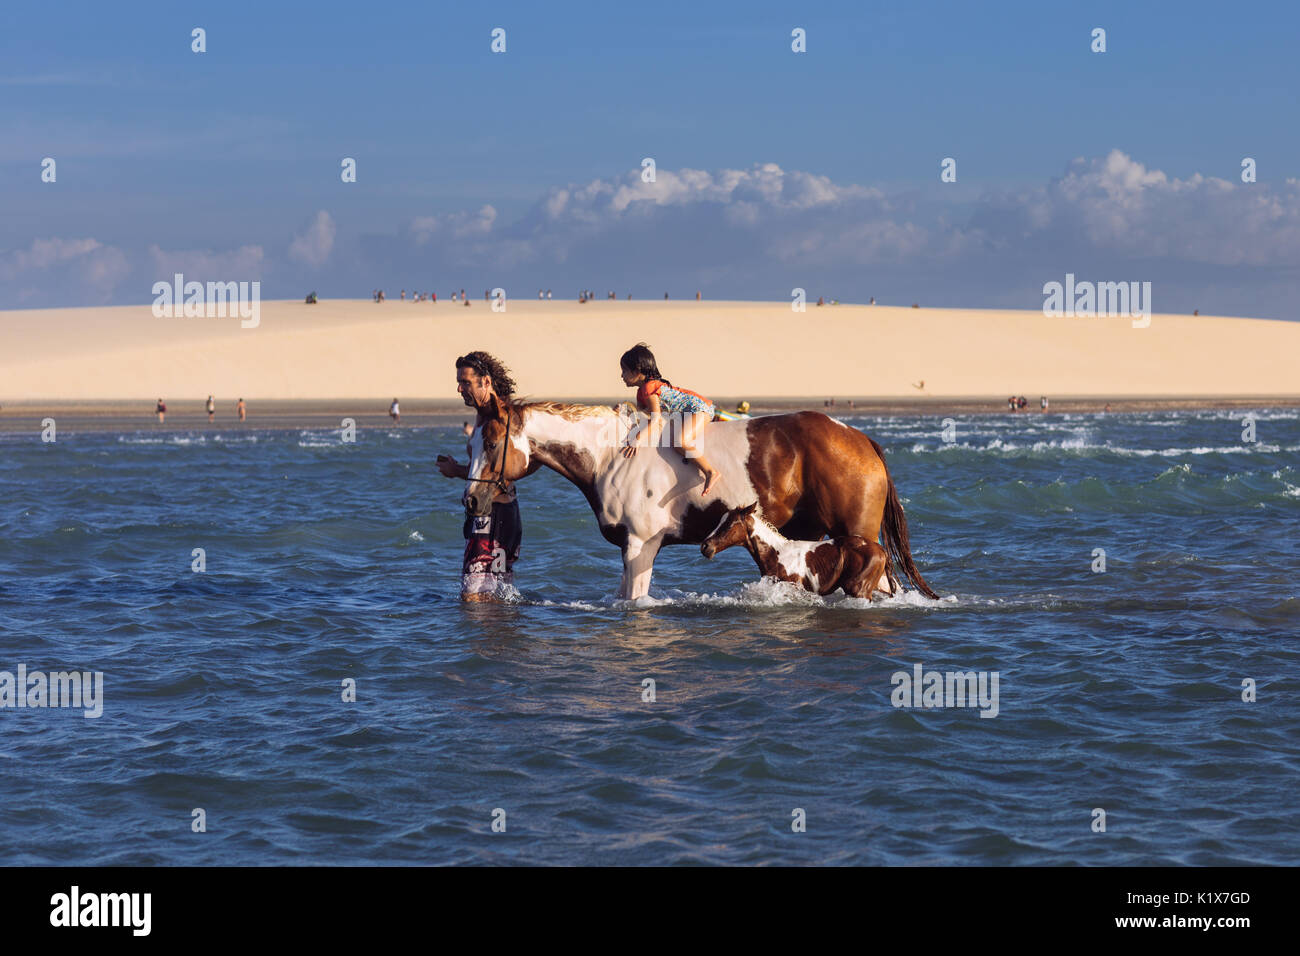 A little girl mounting a horse and its litter in the ocean while his father guide them in Jericoacoara, Ceará, Brasil - Stock Image